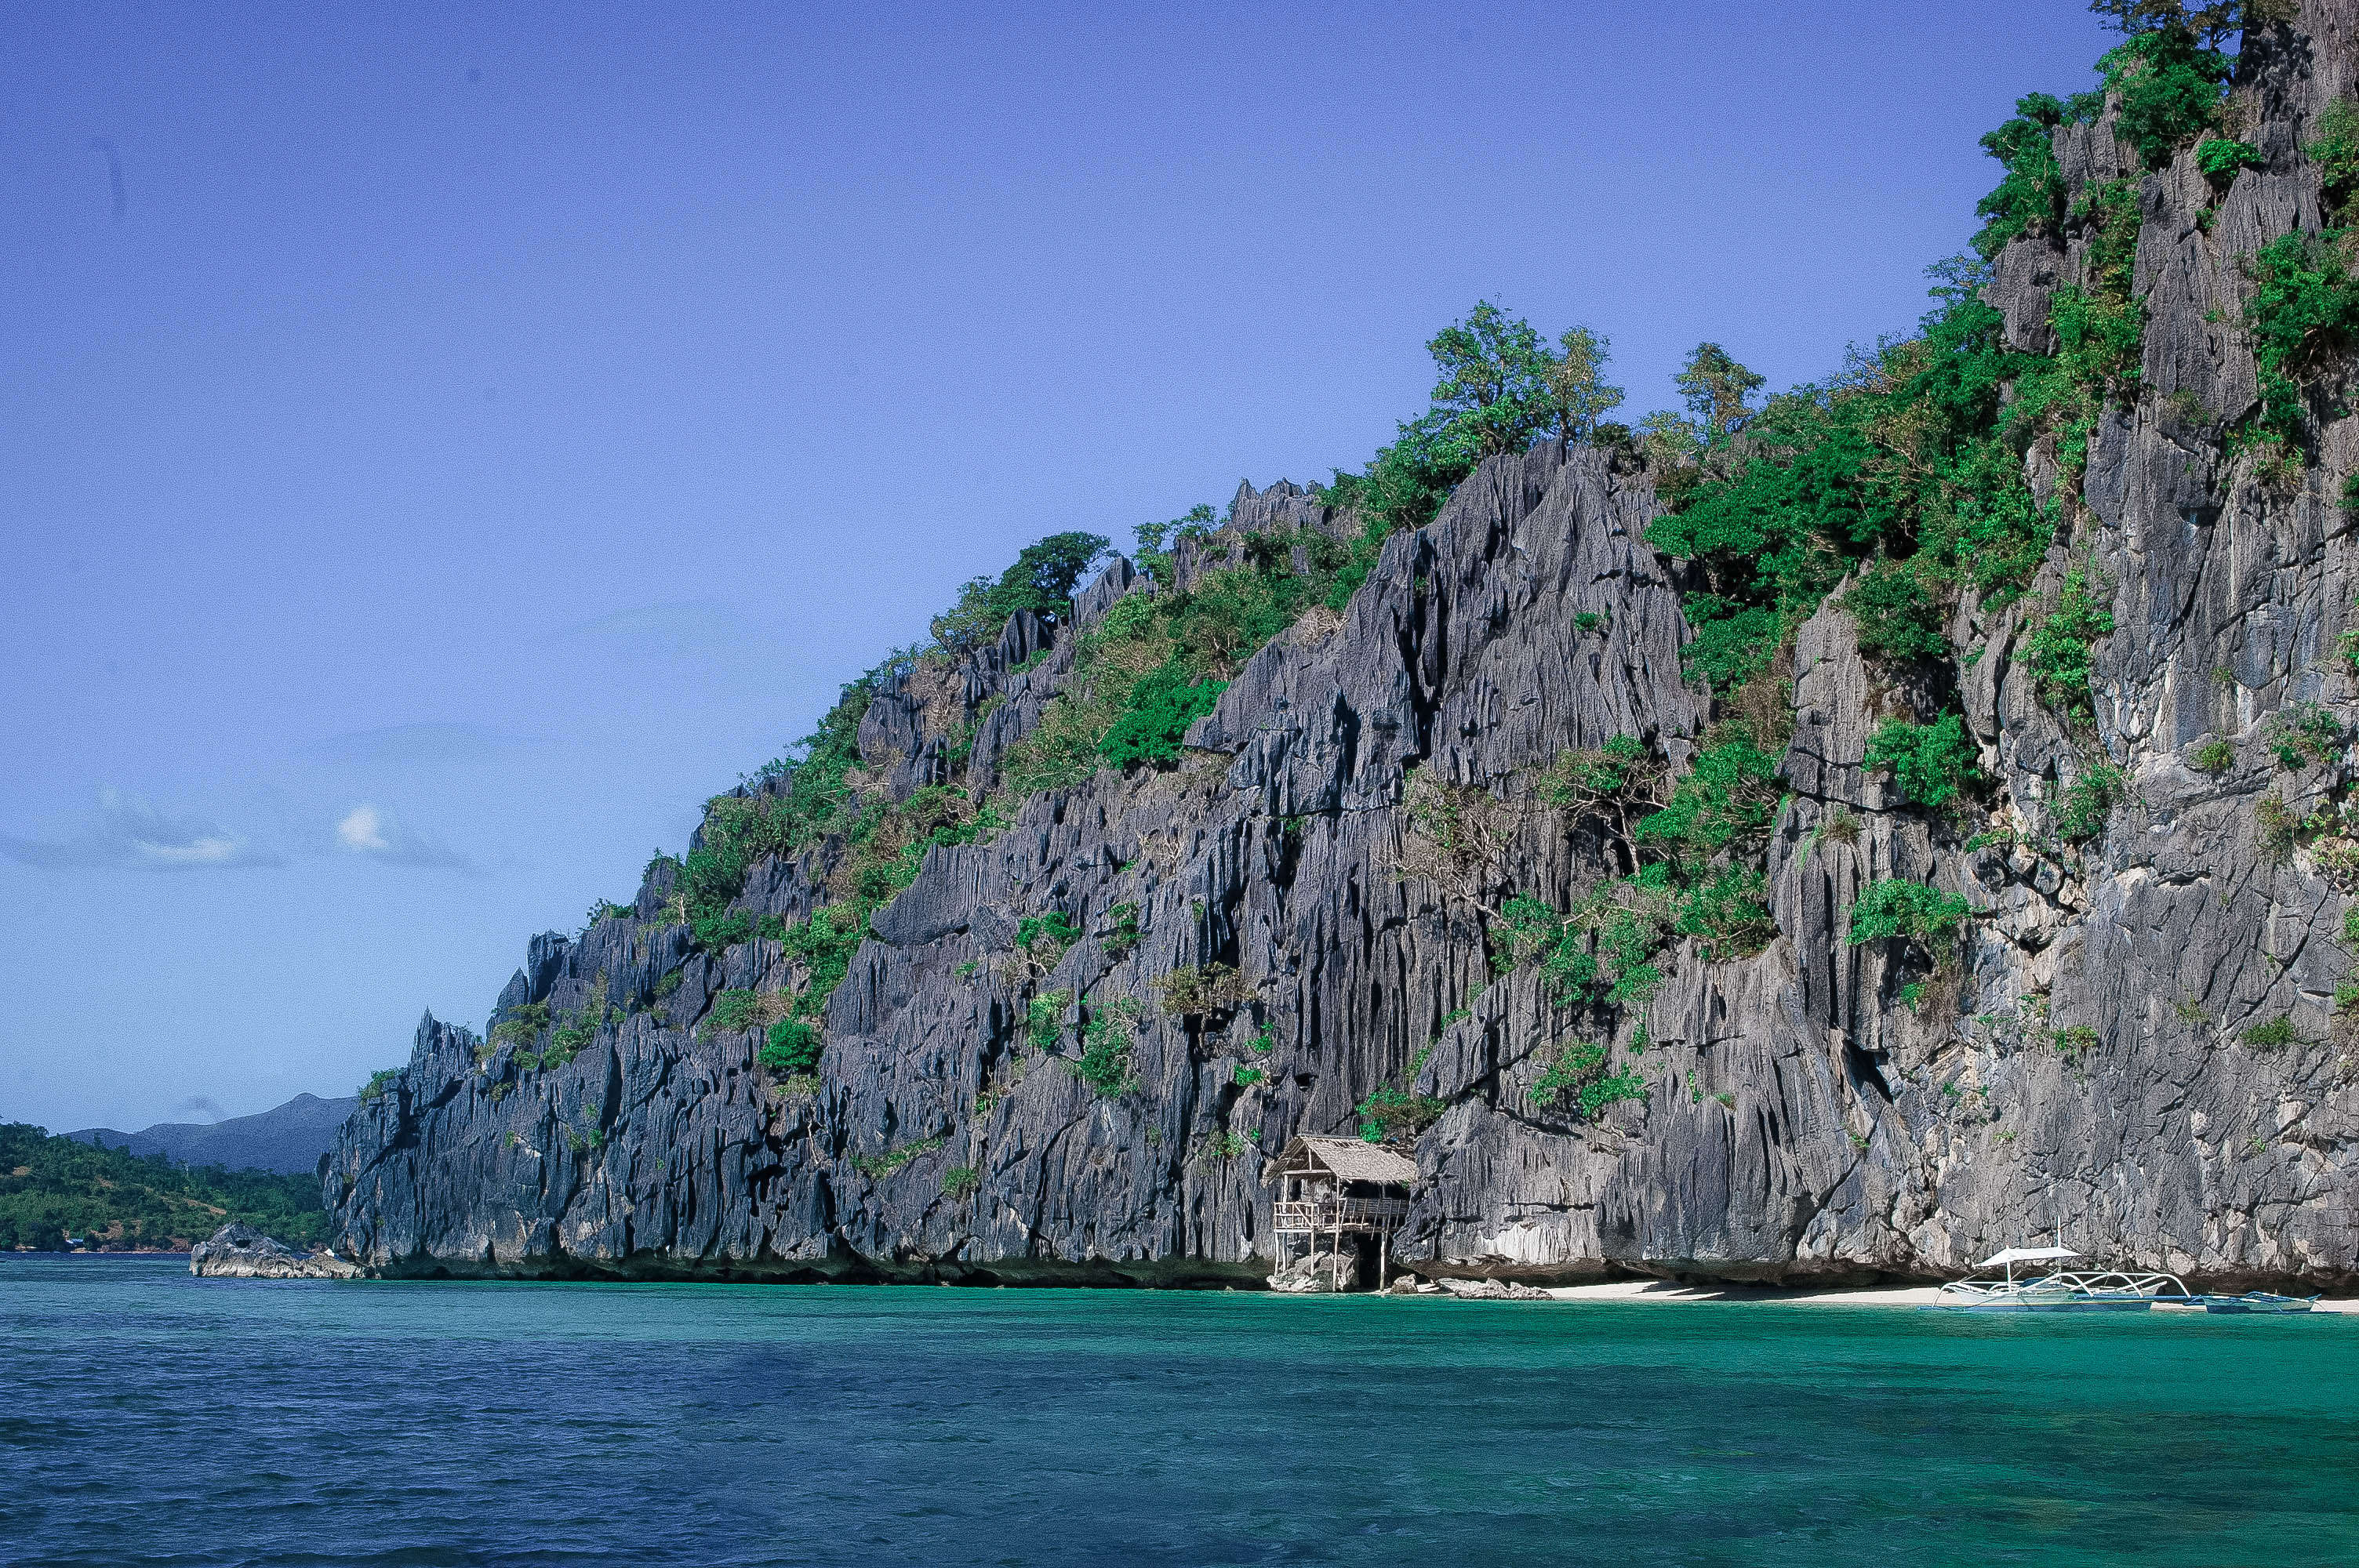 PALAWAN: Coron Travel Guide (Budget + Itinerary)